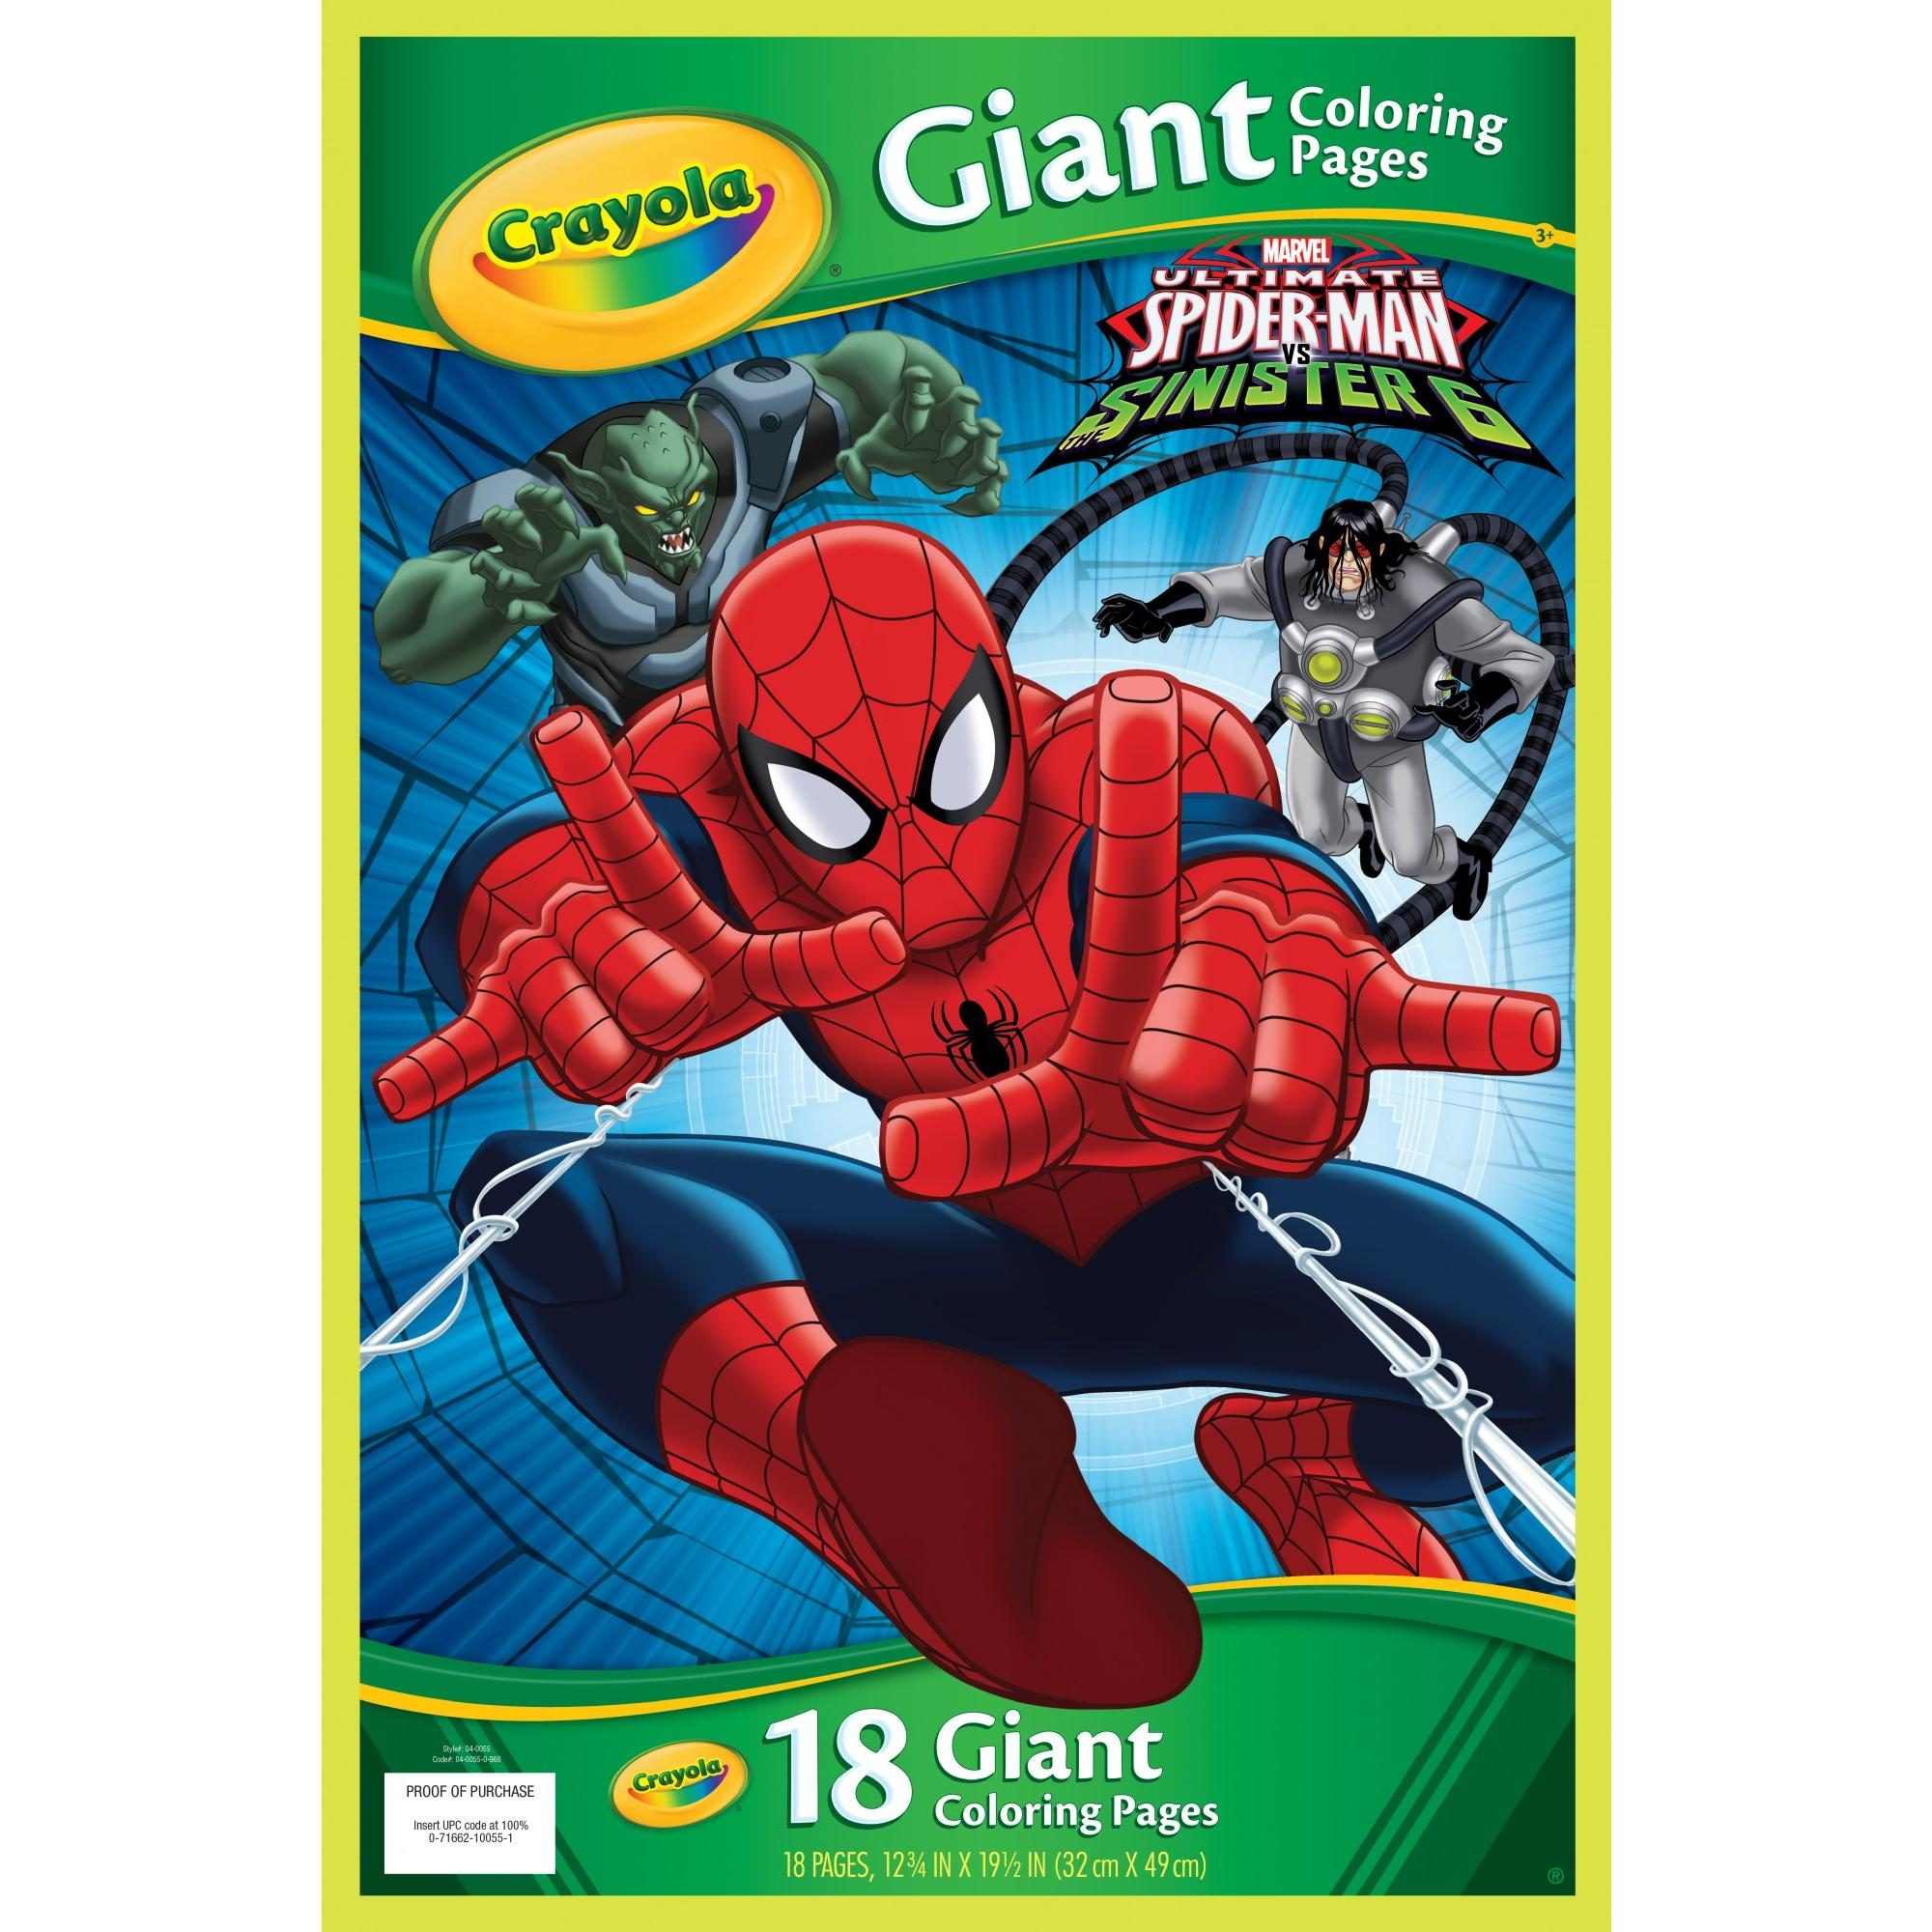 Crayola Giant Coloring Pages Featuring Spiderman 18 Pages